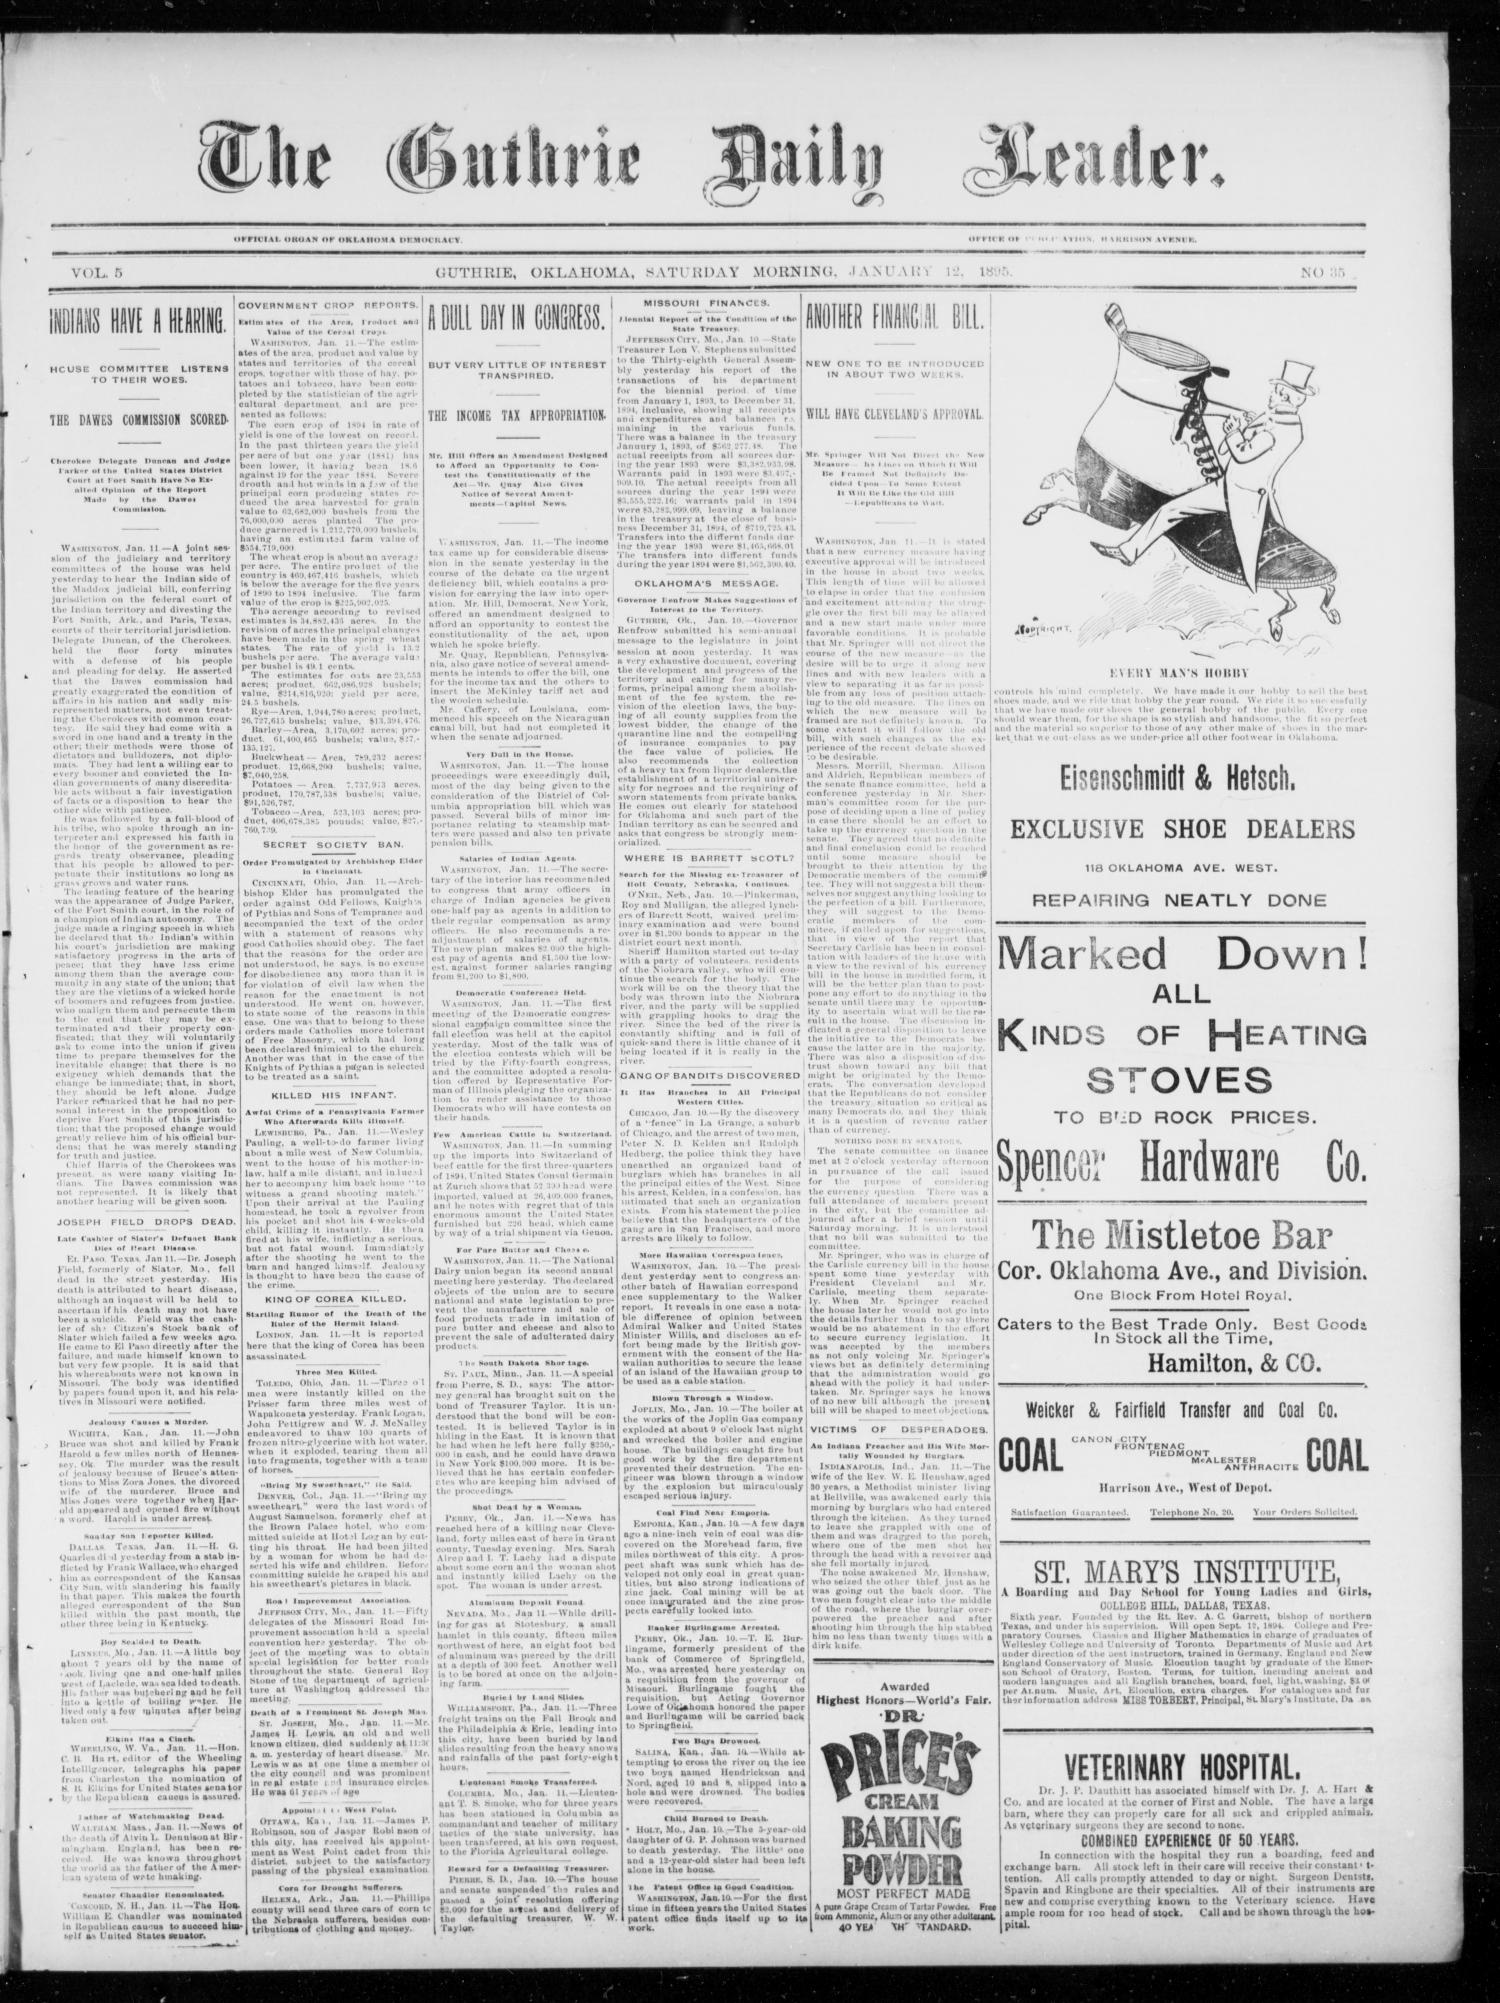 The Guthrie Daily Leader. (Guthrie, Okla.), Vol. 5, No. 35, Ed. 1, Saturday, January 12, 1895                                                                                                      [Sequence #]: 1 of 4